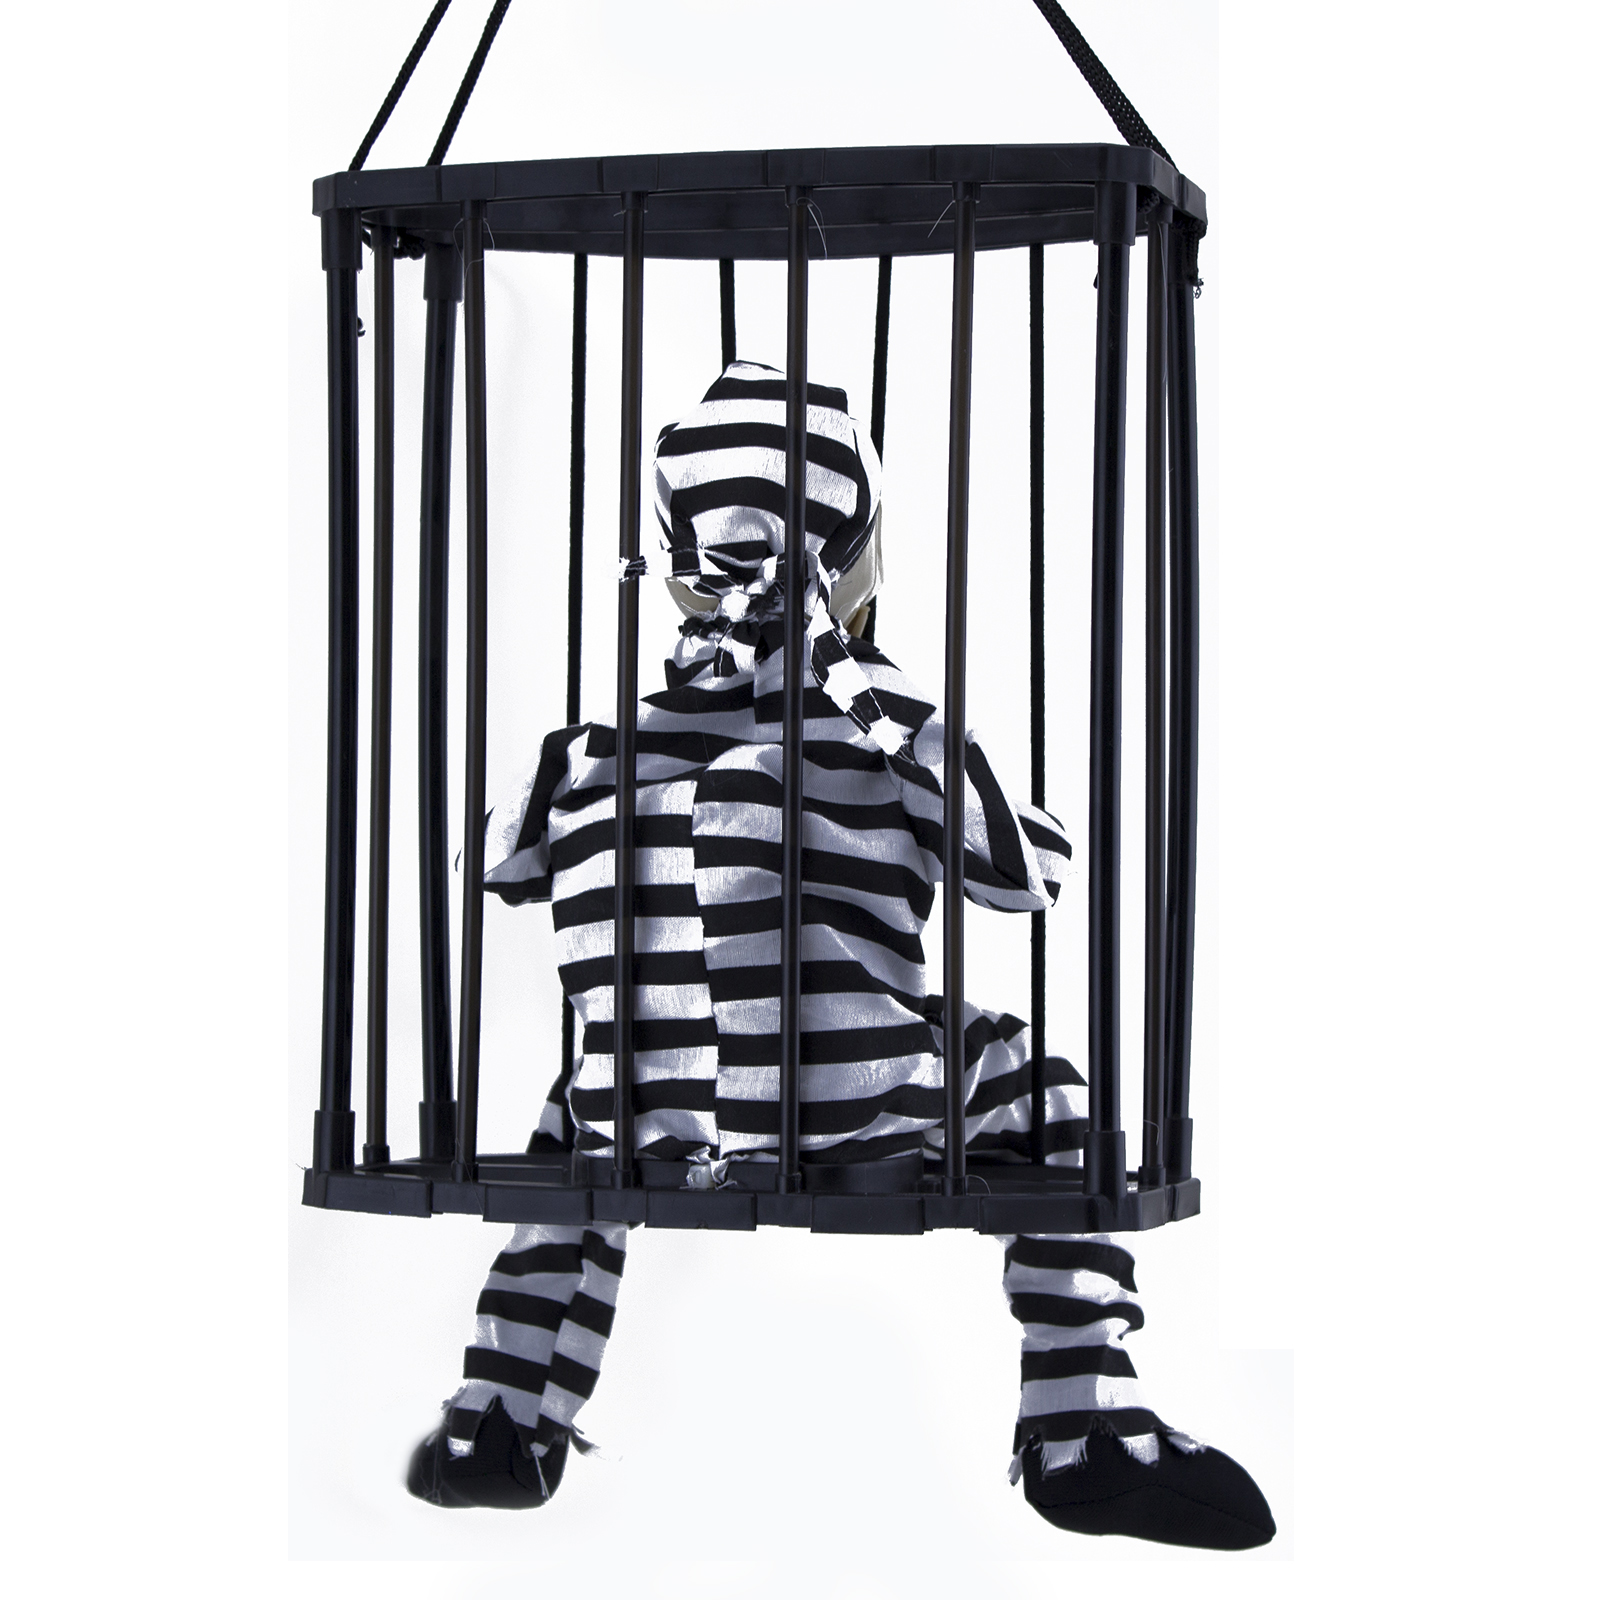 Haunted House Motion Sensor Light Up Talking Skeleton Prisoner Cage Ebay